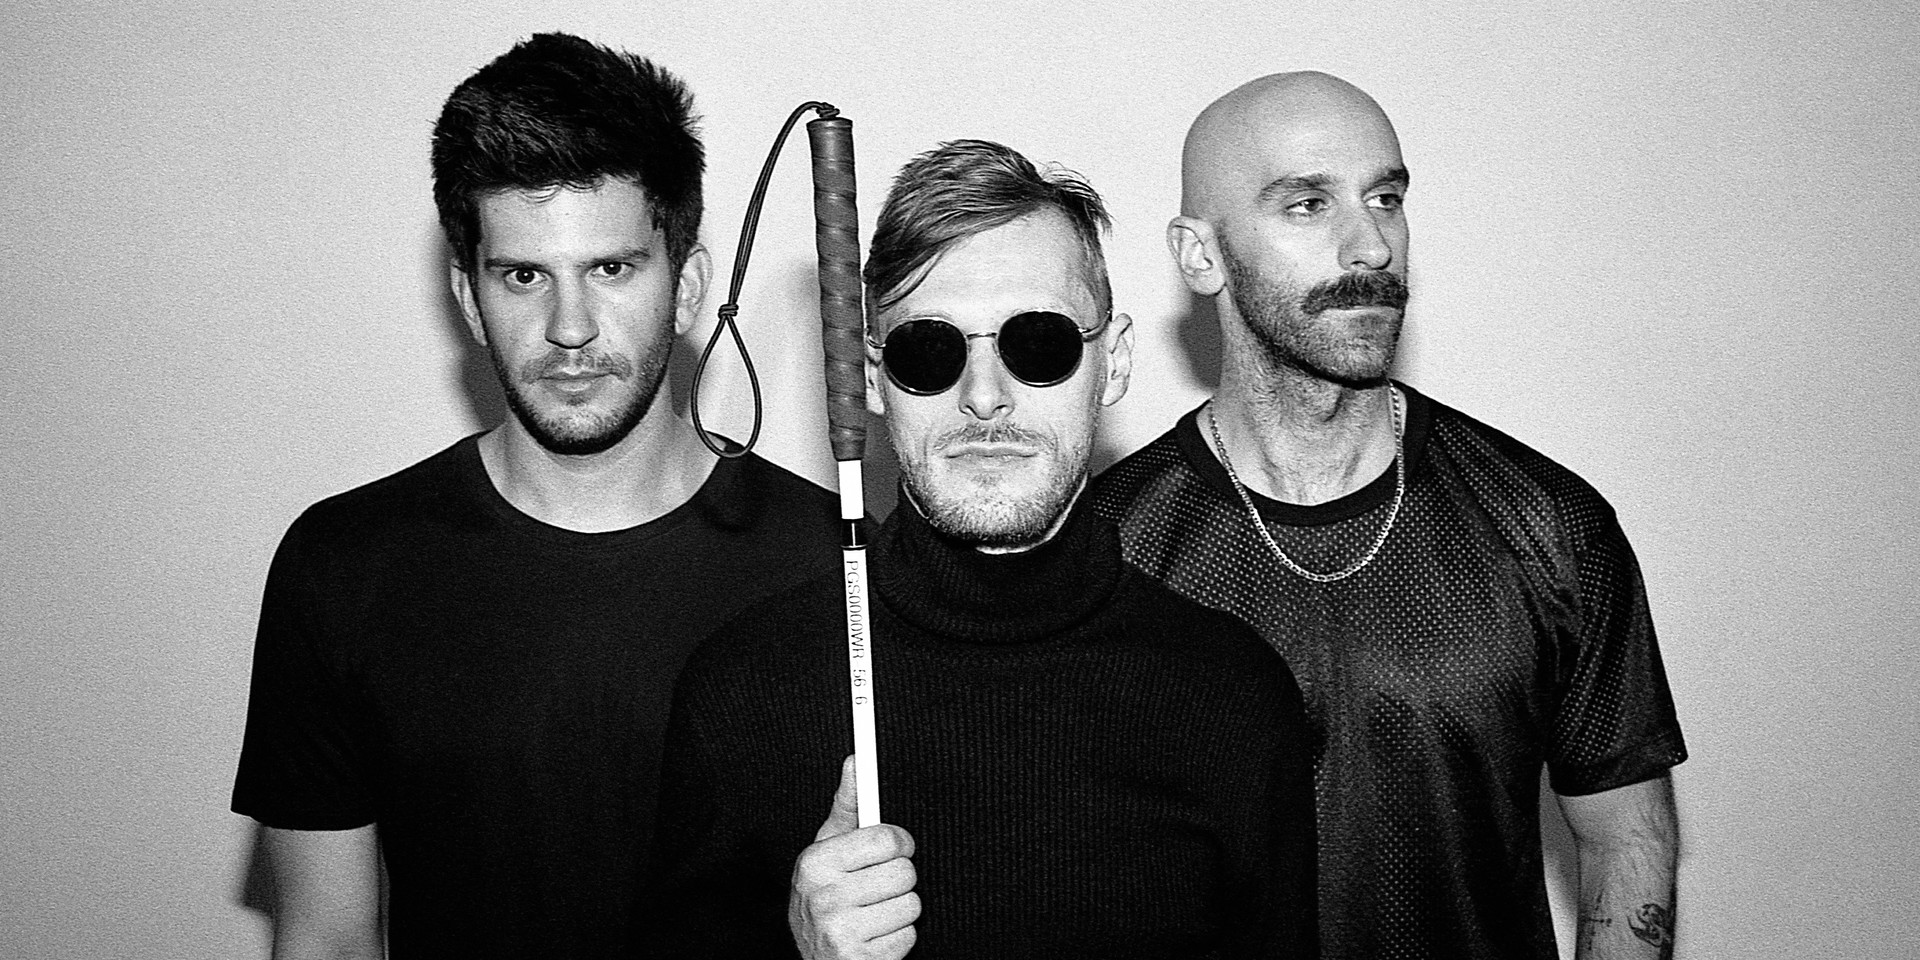 X Ambassadors will arrive in Singapore next February for The ORION tour